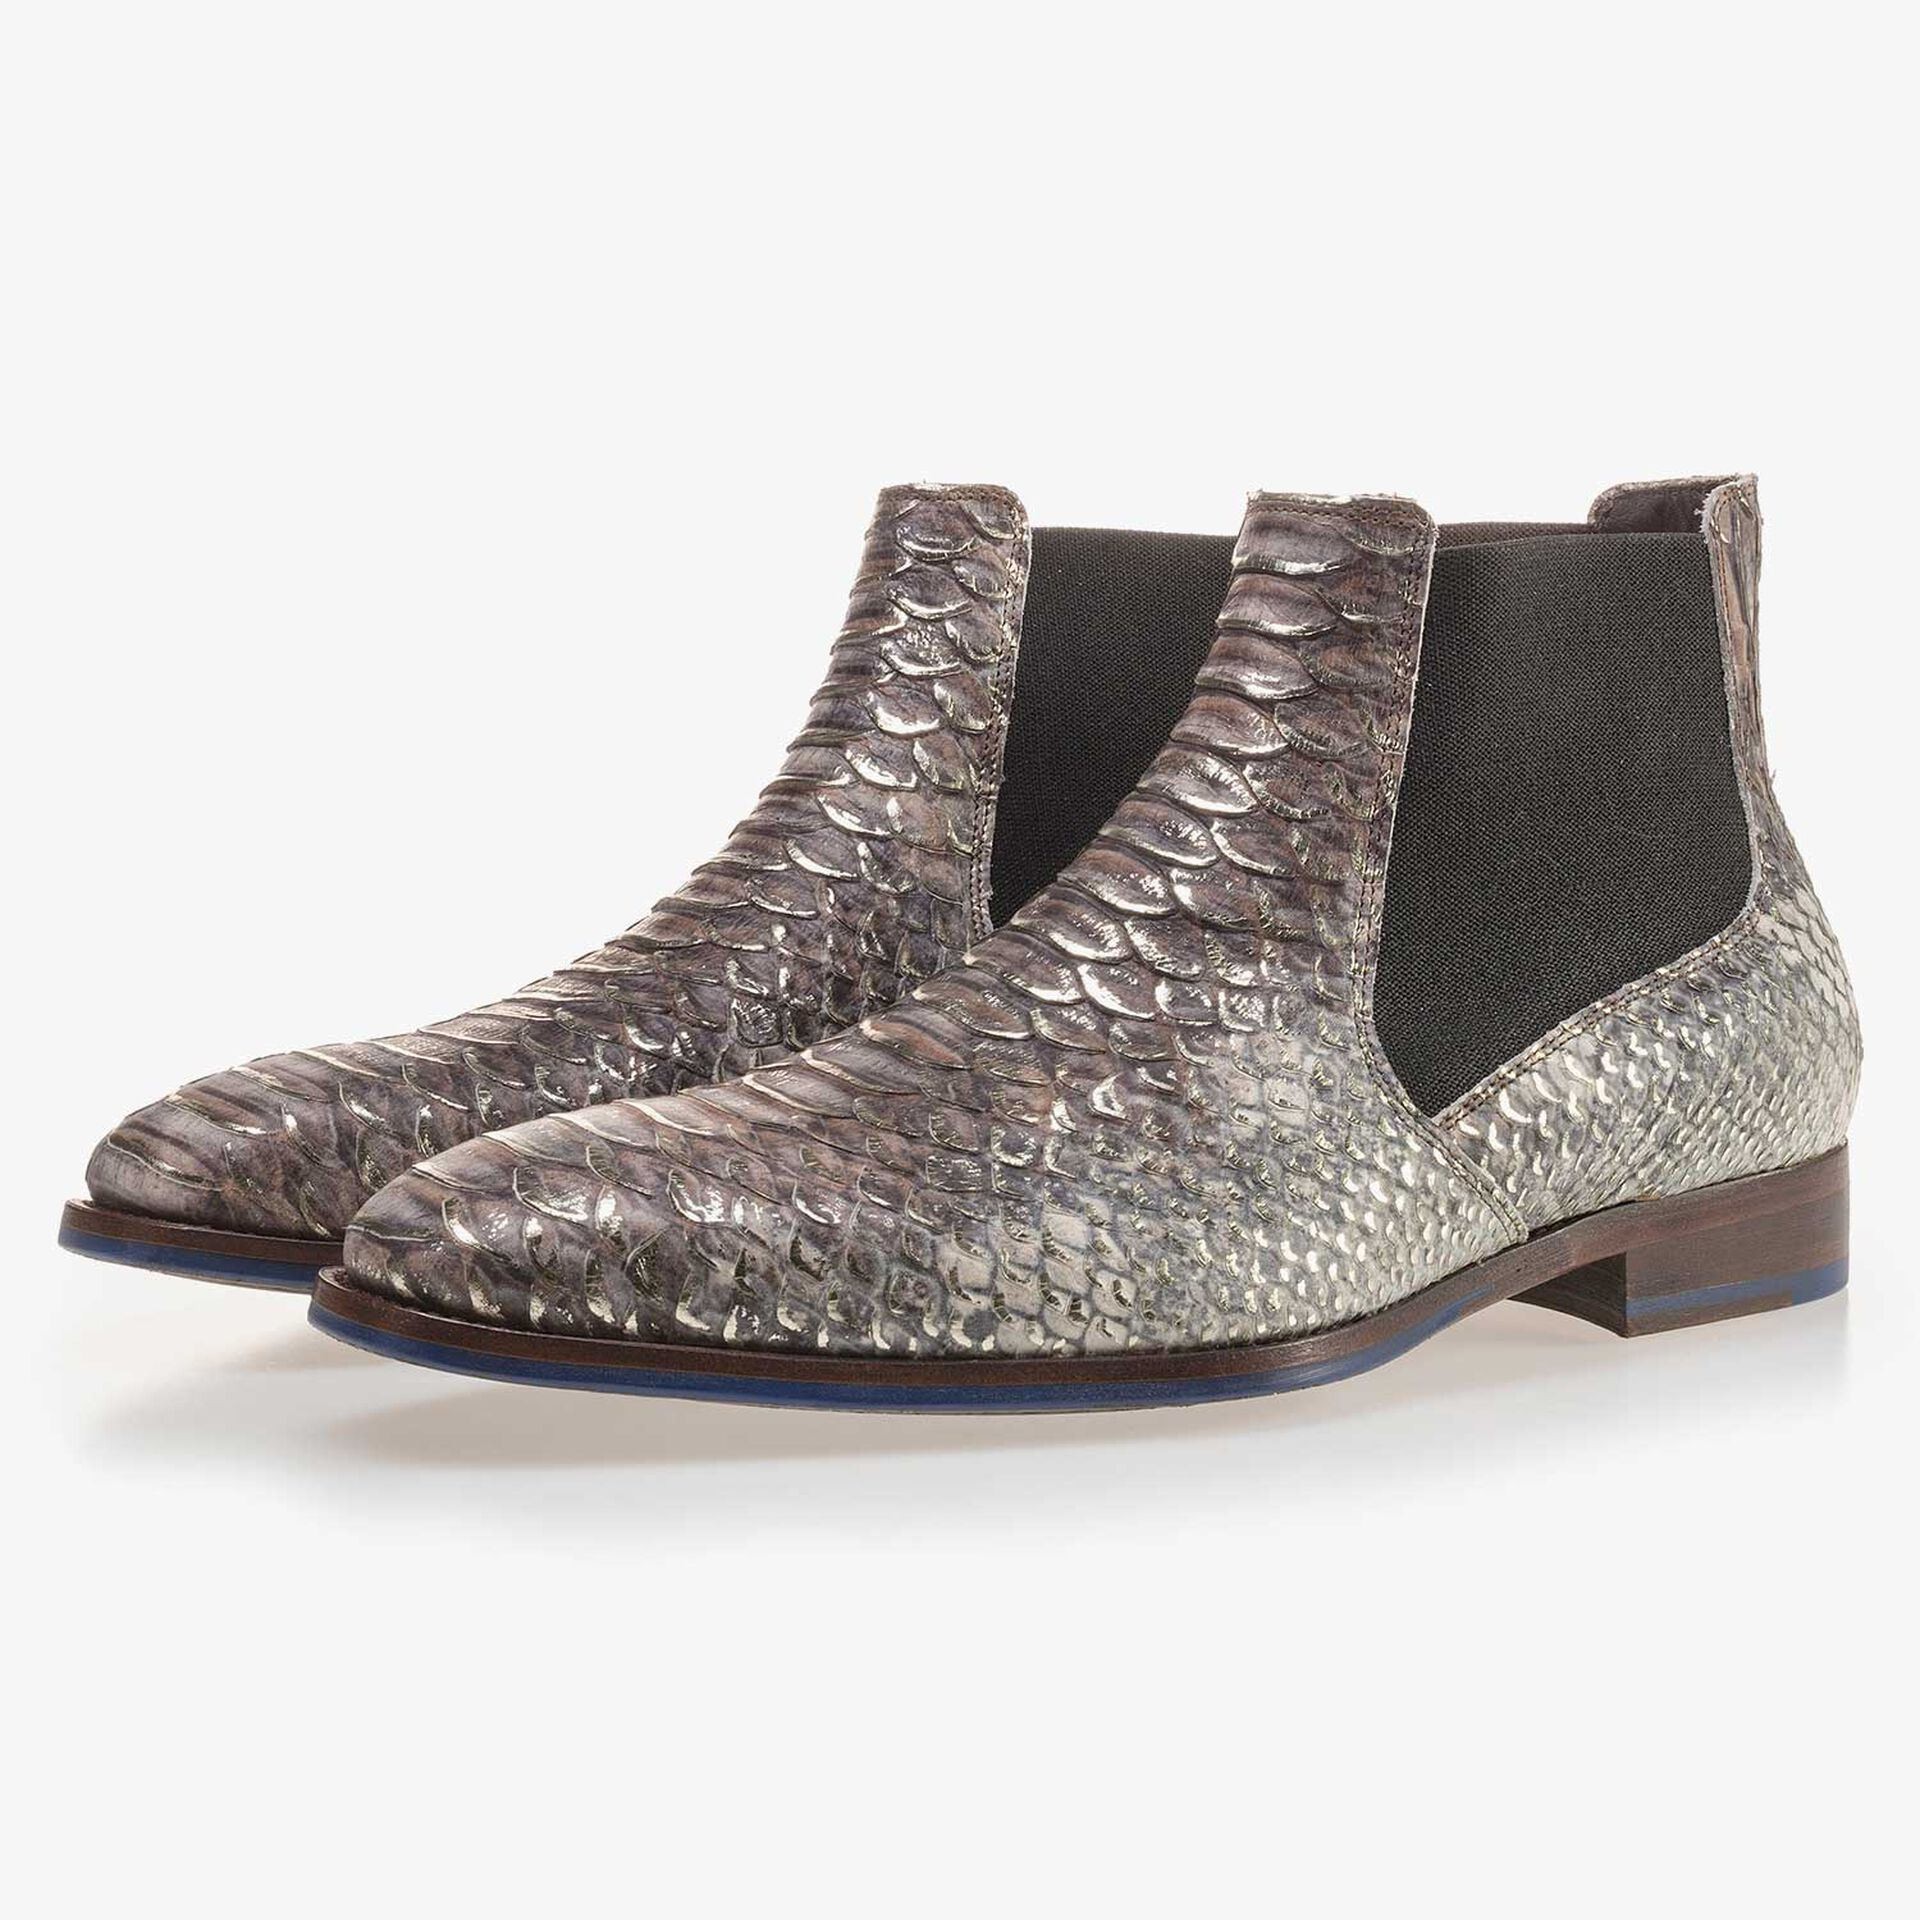 Taupe Premium Chelsea boot with a snake relief pattern